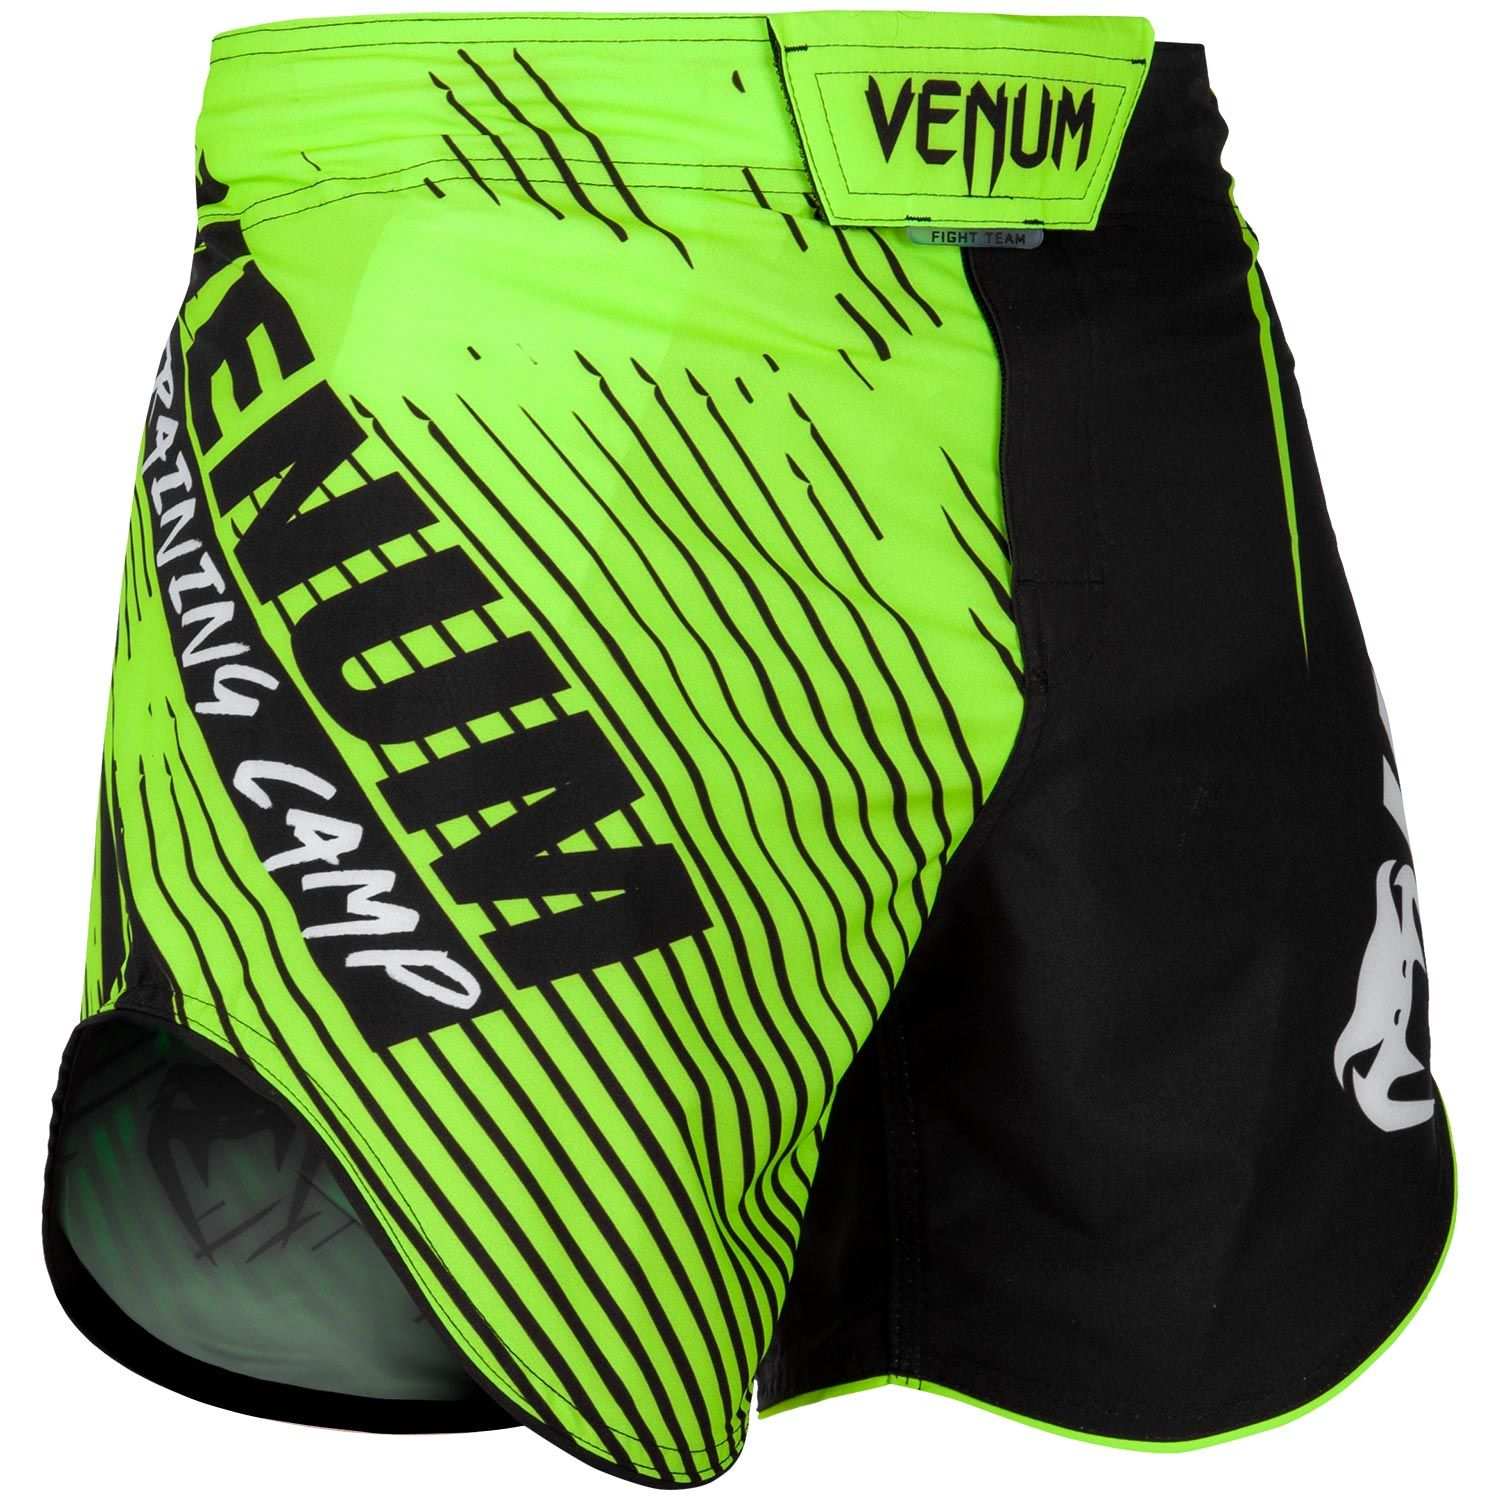 Venum Training Camp 2.0 Fight Shorts | Minotaur Fight Store